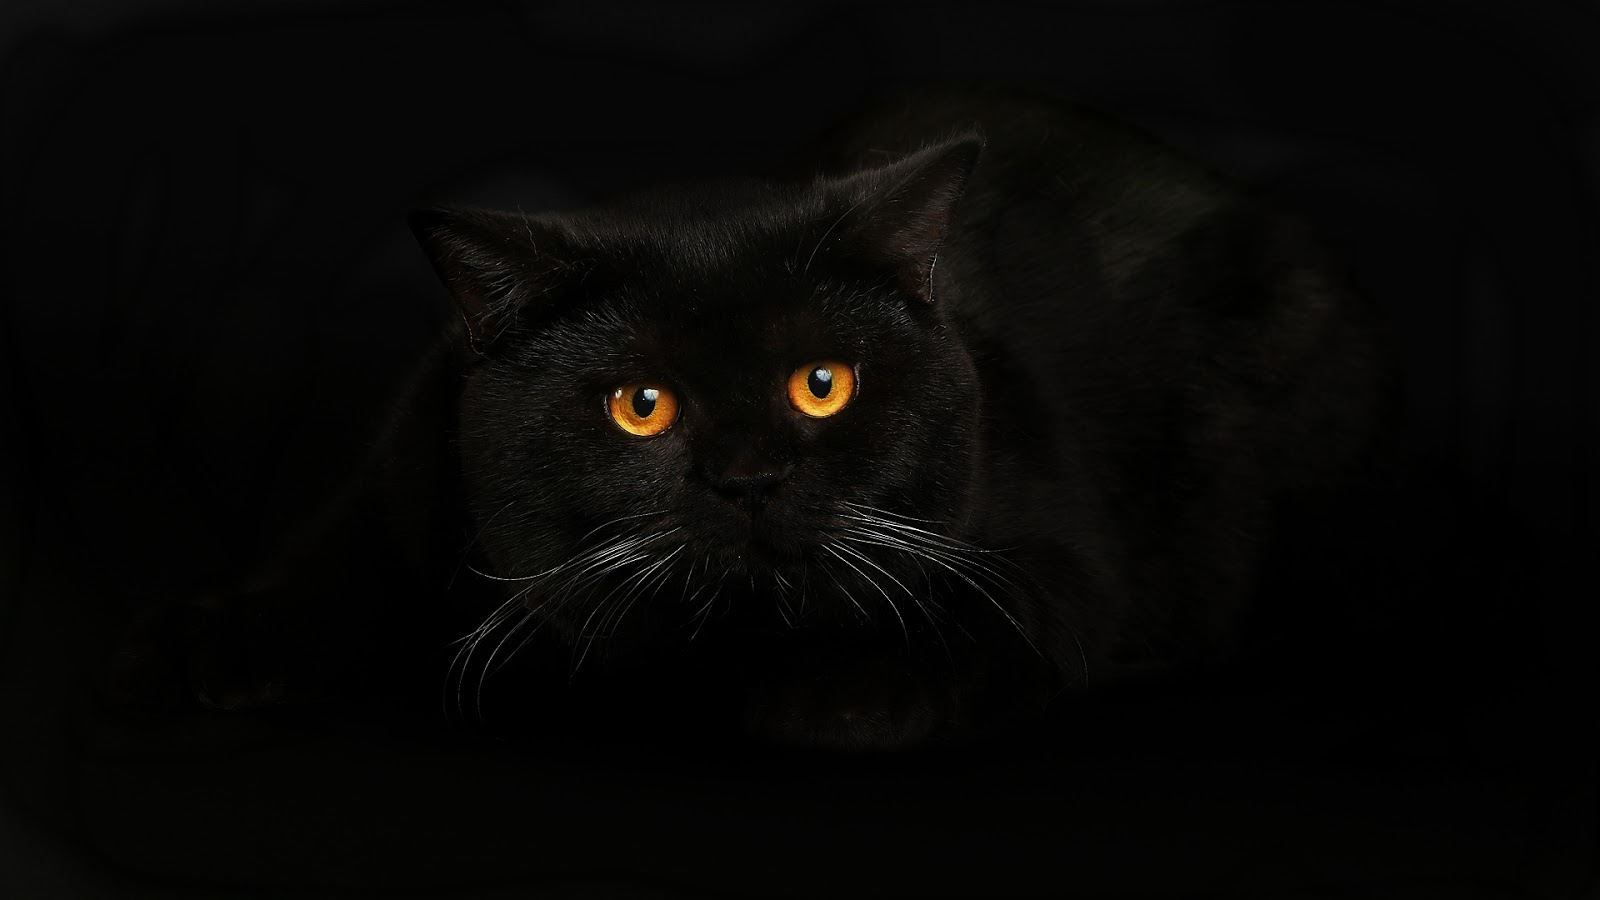 Black Cat Wallpaper Best Hd Wallpapers